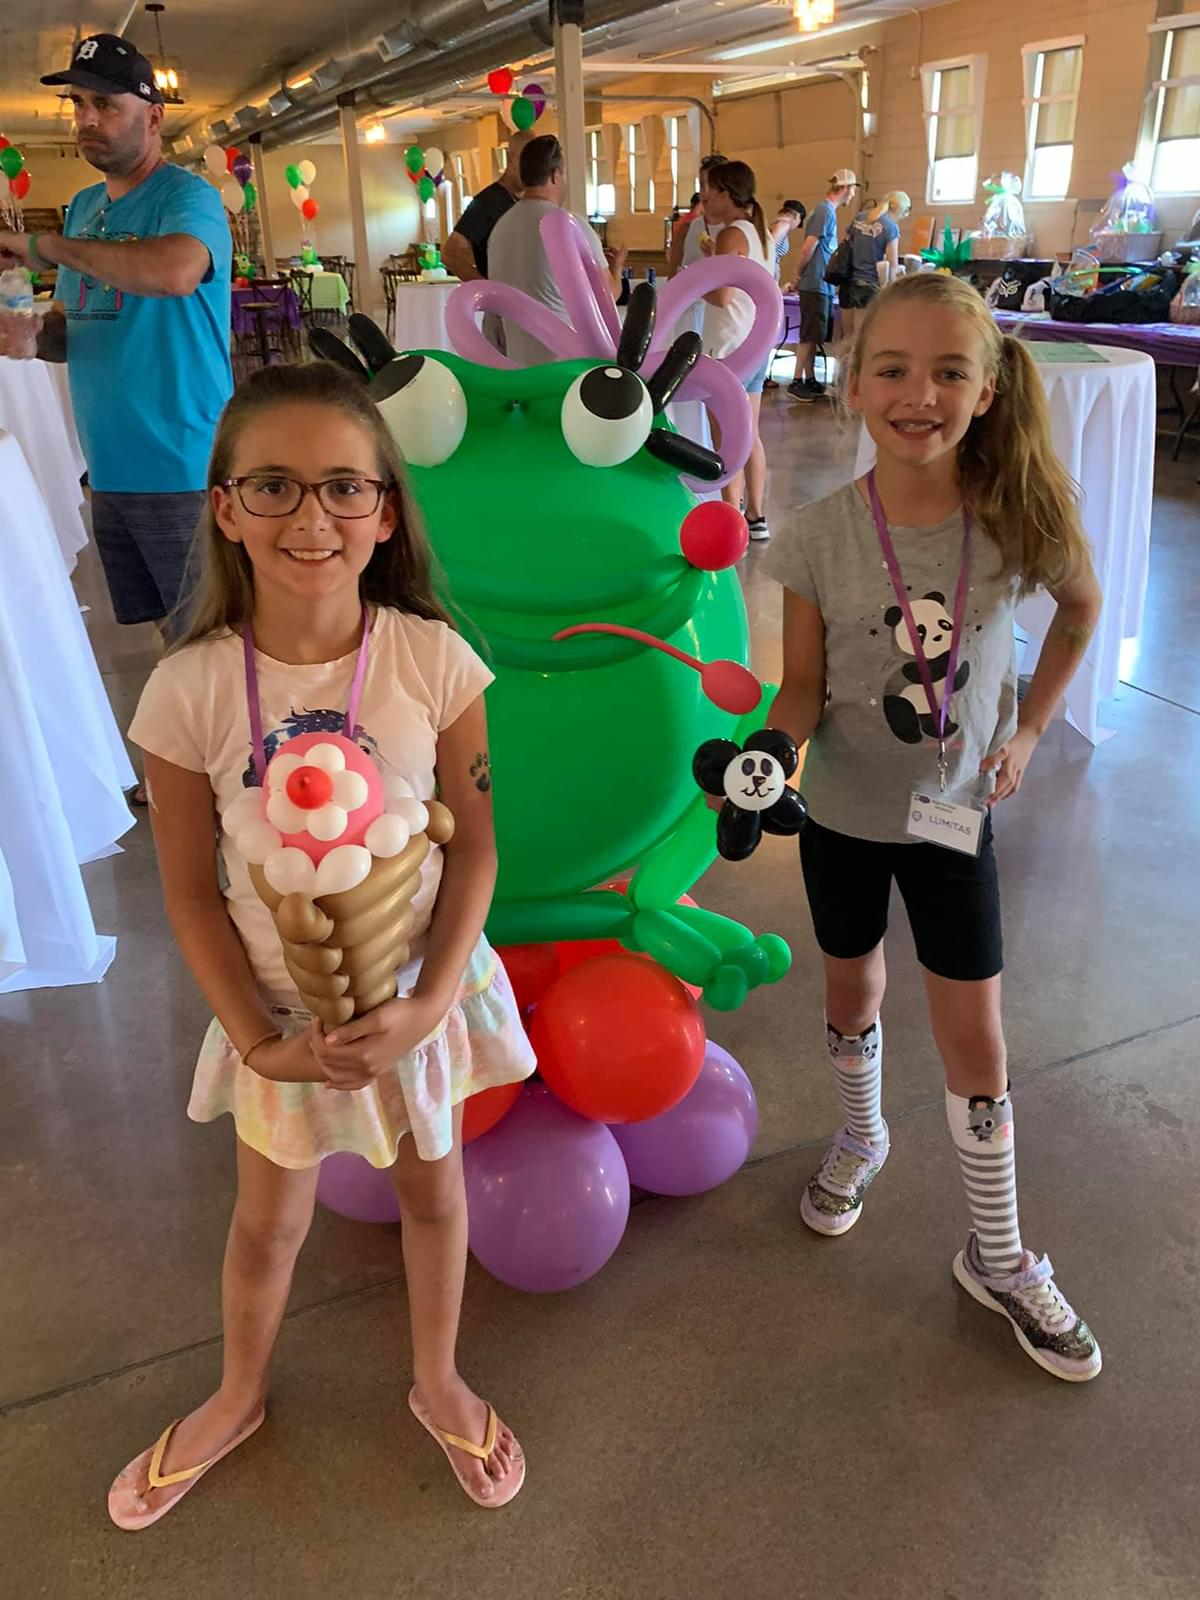 Kids with a large ballon of the frog